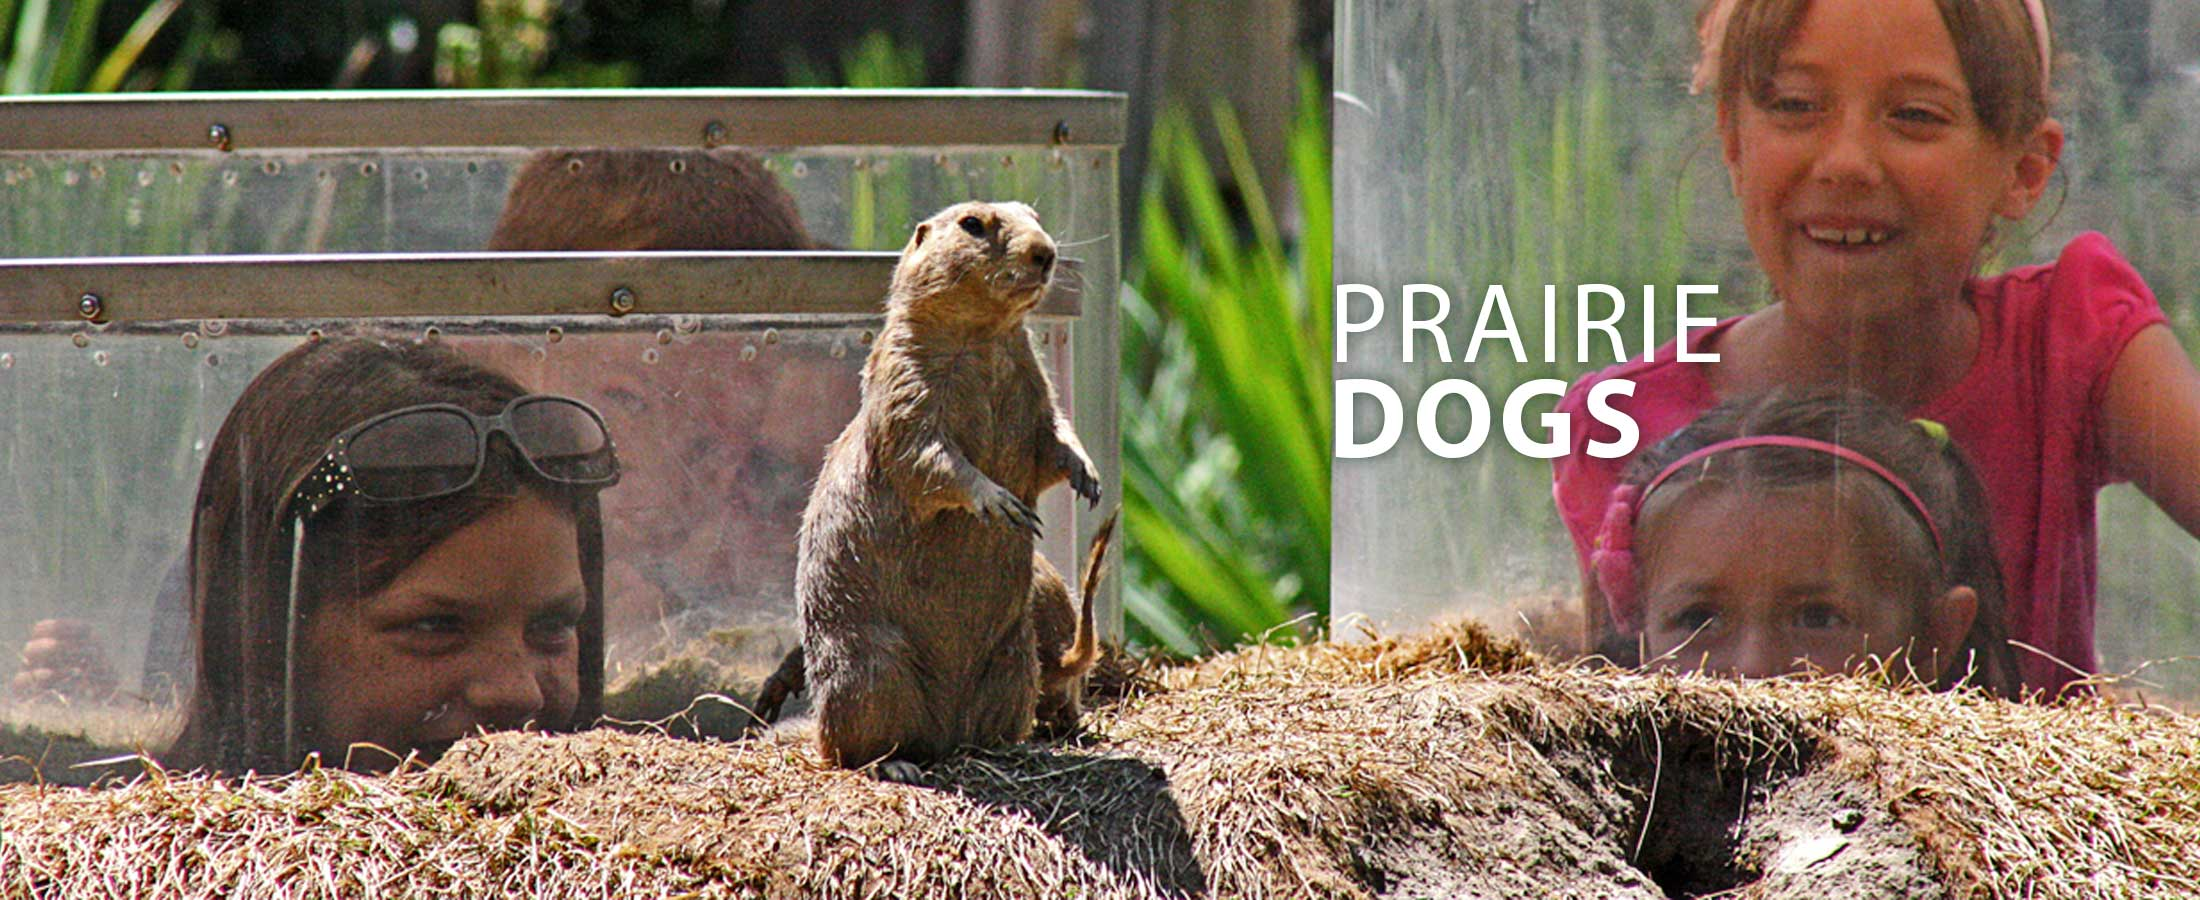 PrairieDogs